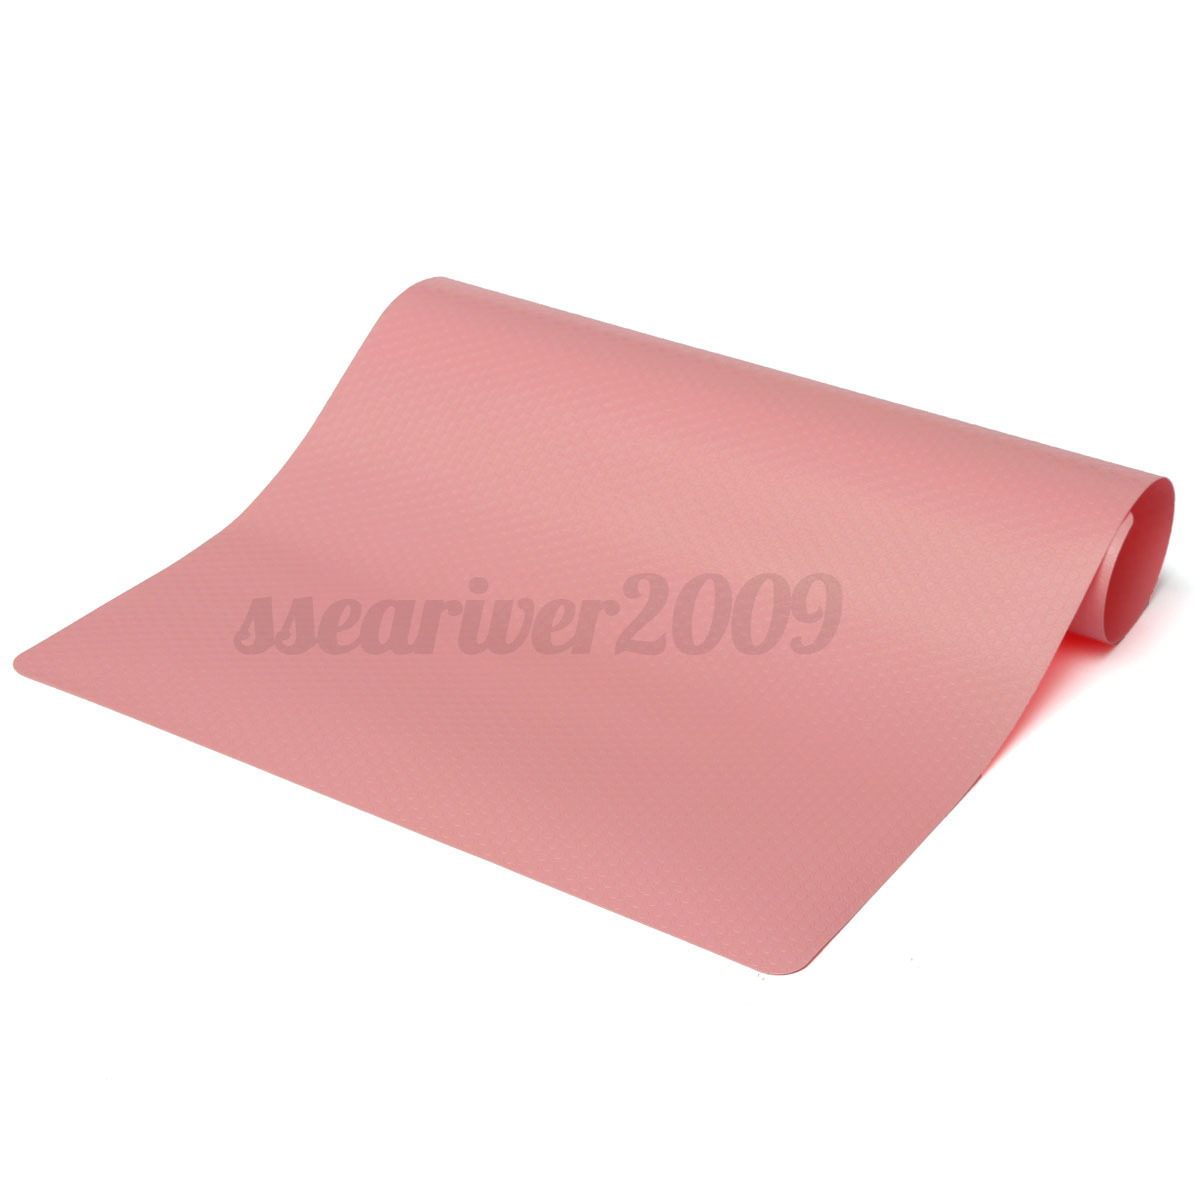 Heat Resistant Mat For Dining Table ... -Baking-Tray-Oven-Rolling-Kitchen-Bakeware-Heat-Resistant-Mat-New